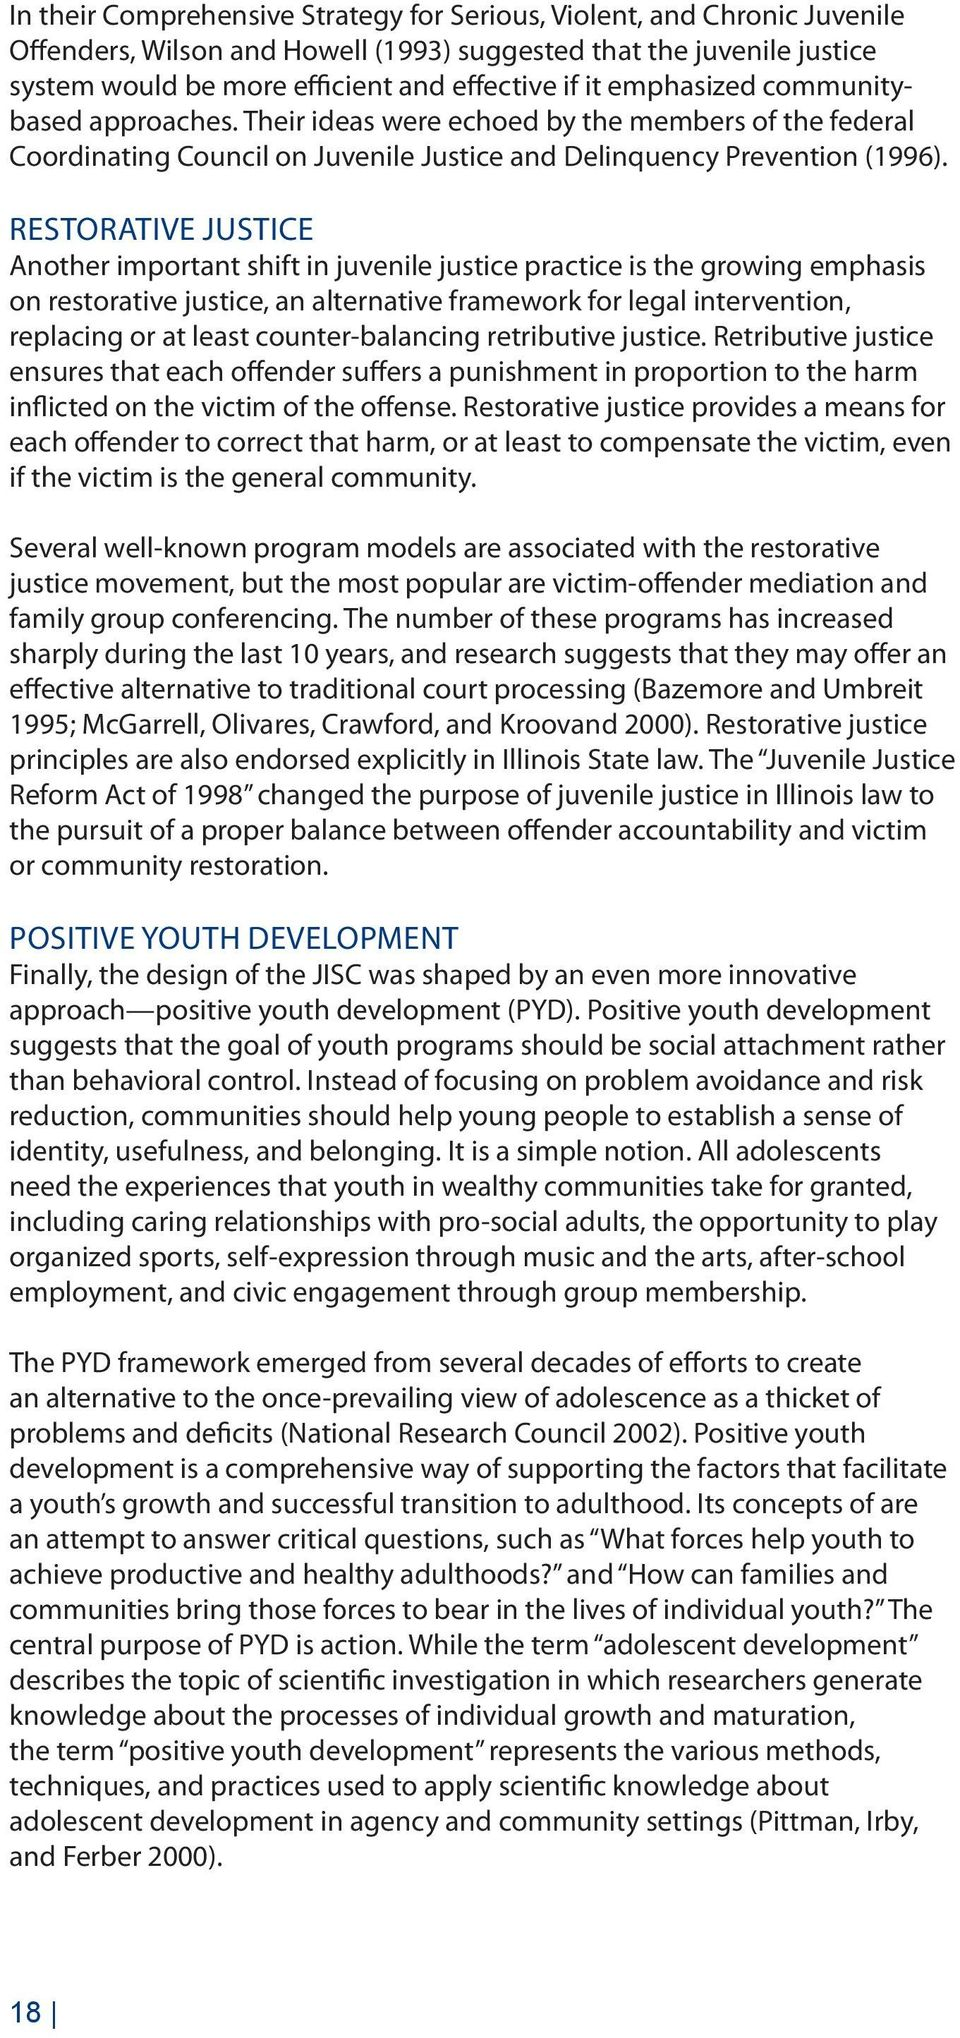 Restorative Justice Another important shift in juvenile justice practice is the growing emphasis on restorative justice, an alternative framework for legal intervention, replacing or at least